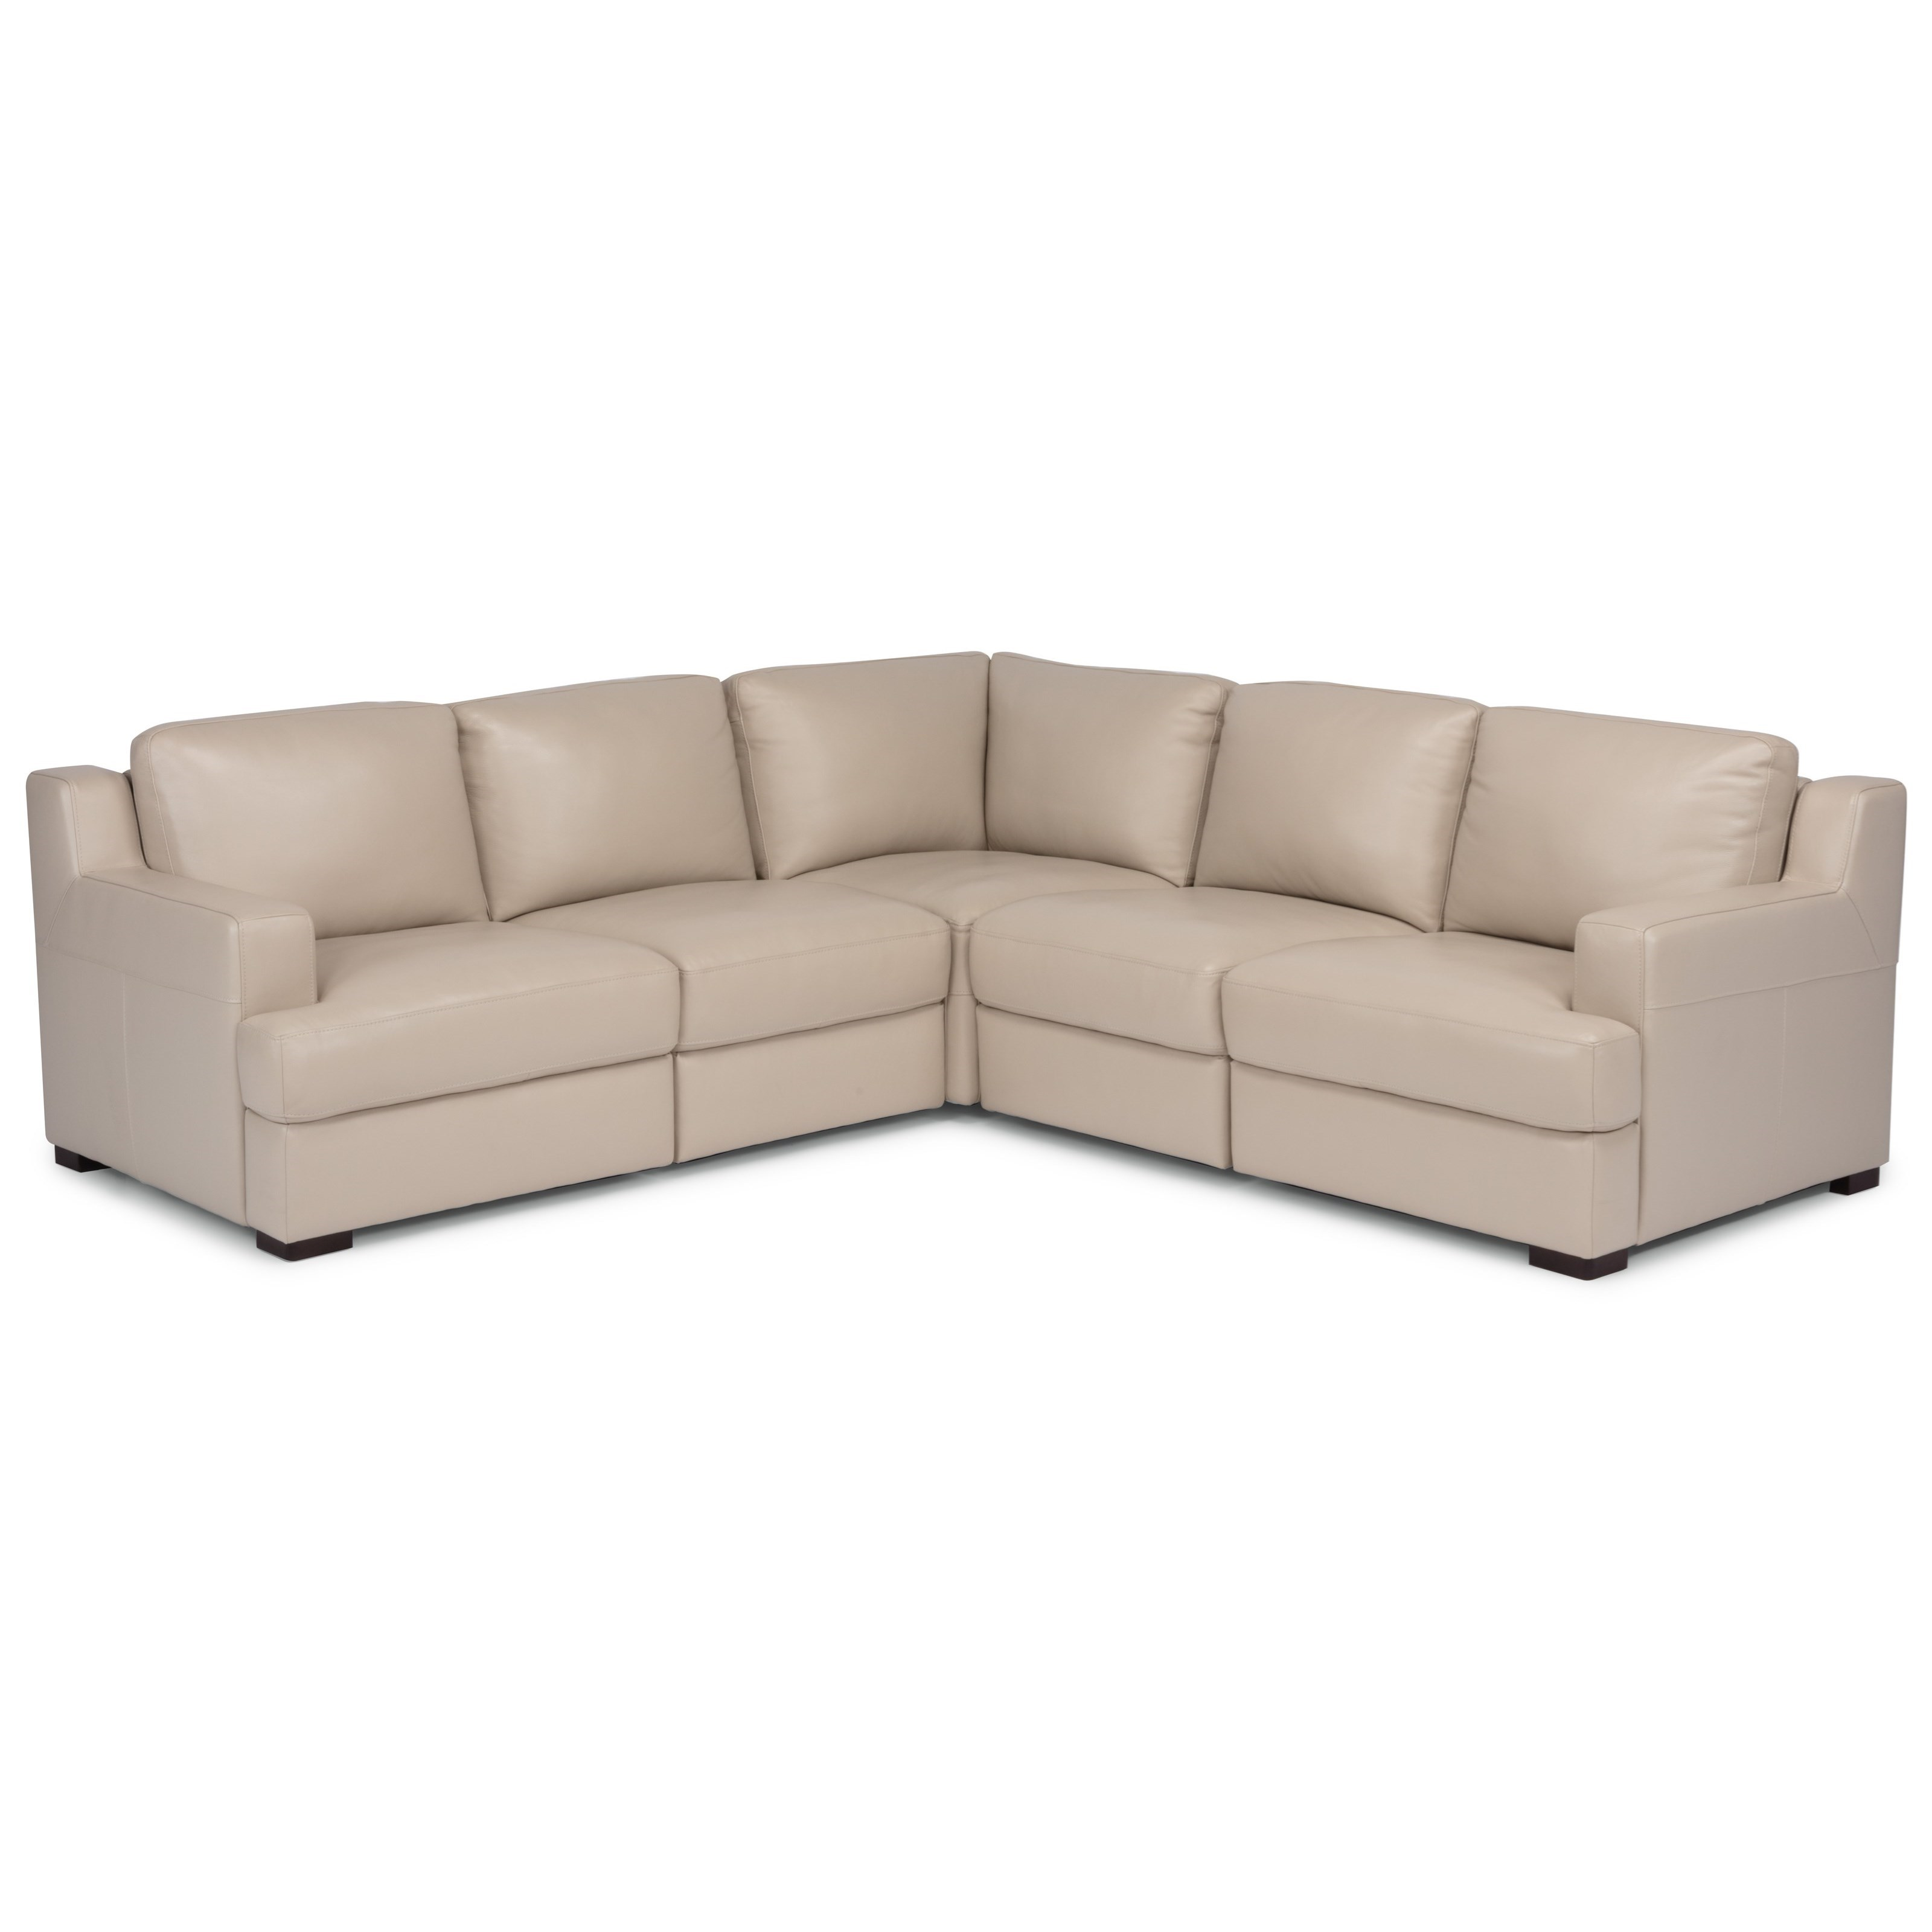 Latitudes- Dowd 5-Piece Sectional by Flexsteel at Walker's Furniture